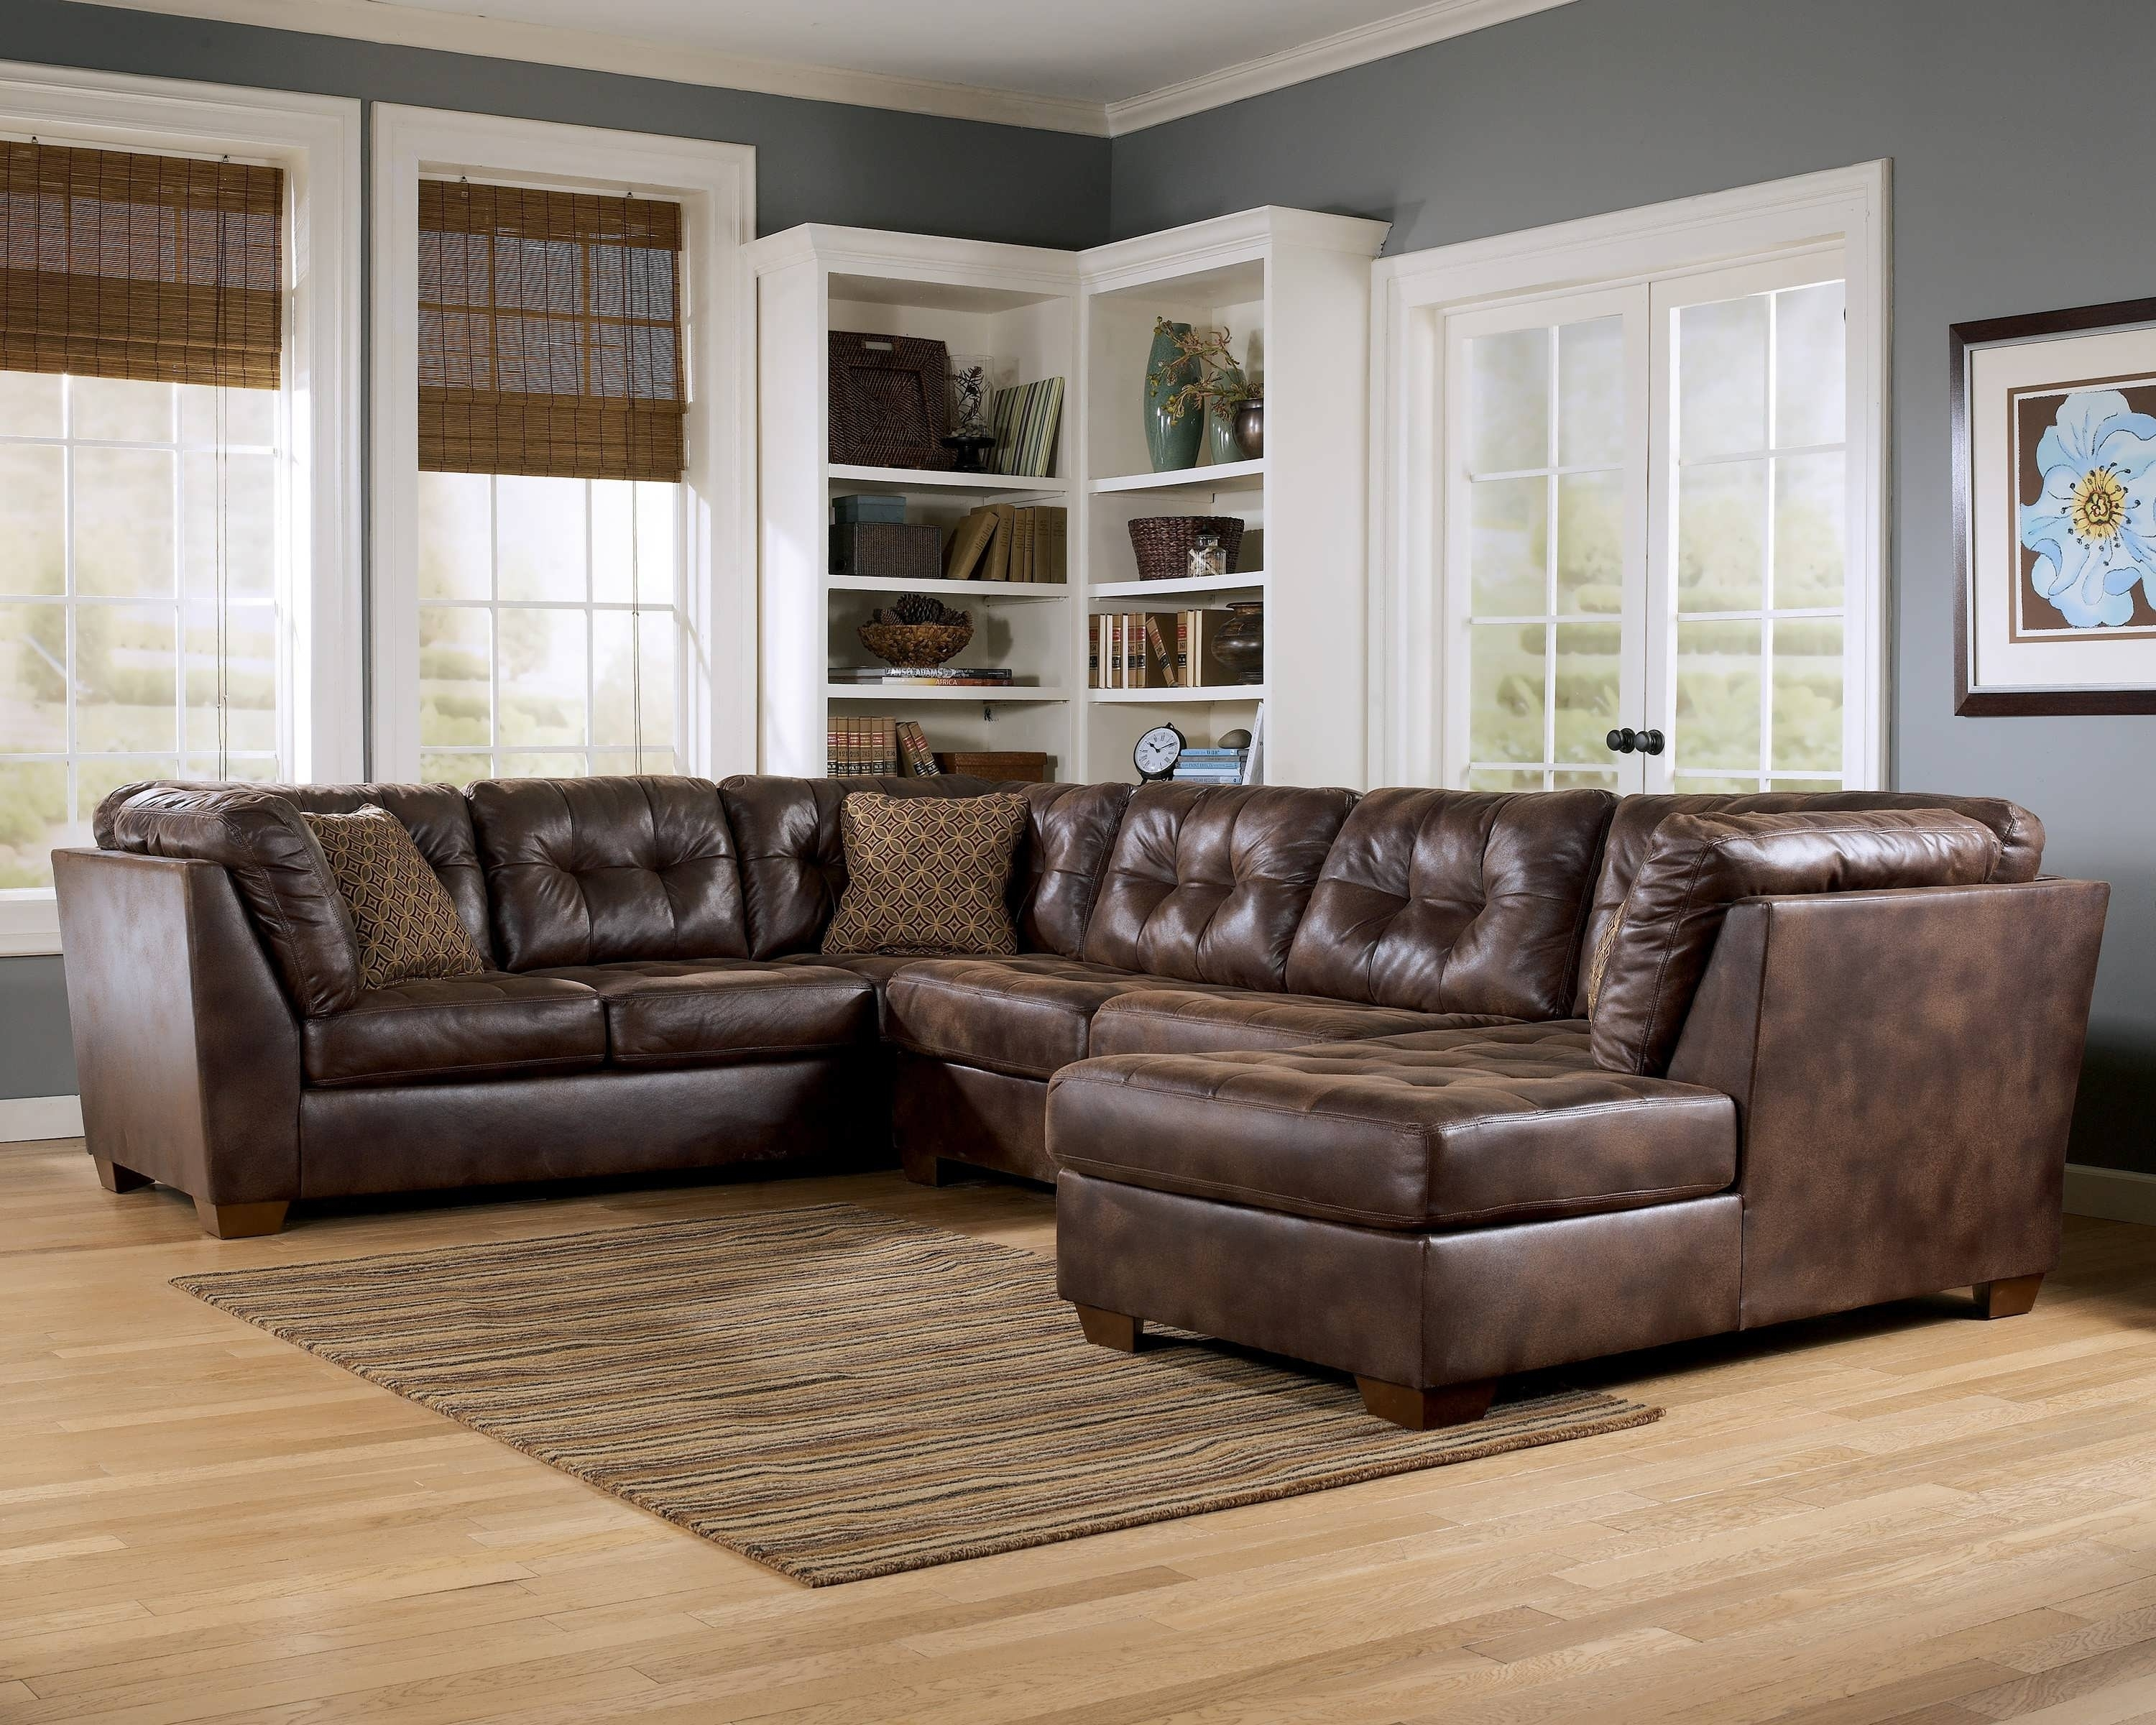 Sofa Leather Sectional Sofas Collection Of Brown Black Couch For In Memphis Tn Sectional Sofas (Image 9 of 10)